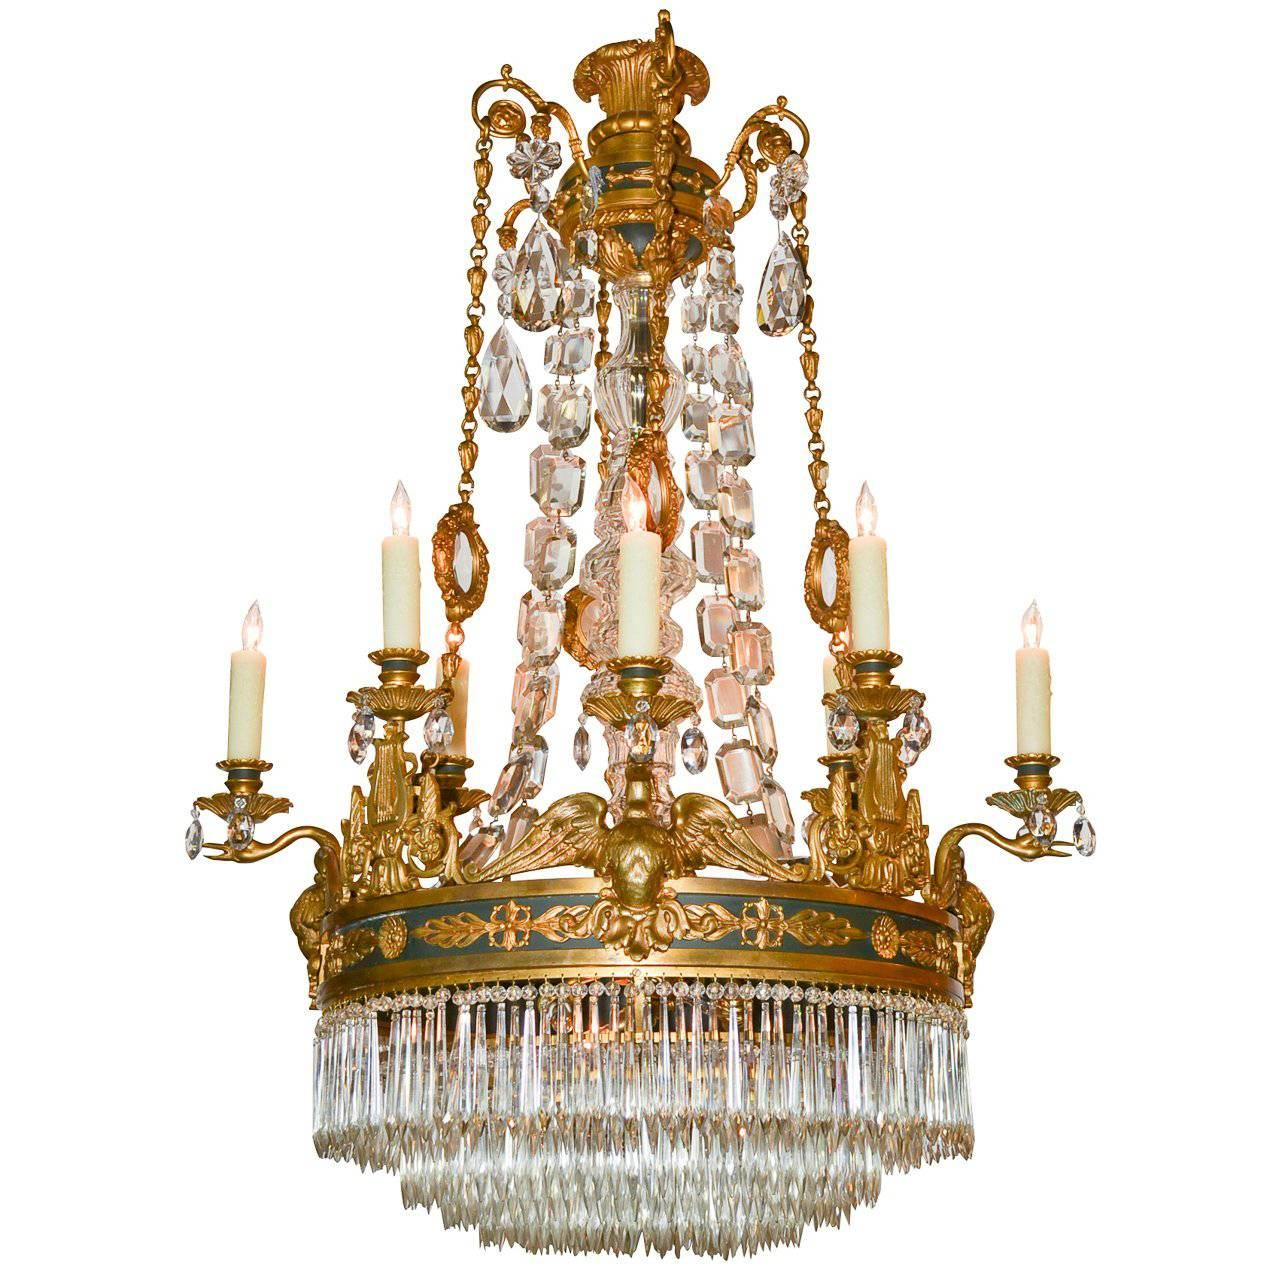 19th century empire chandelier for sale at 1stdibs aloadofball Choice Image